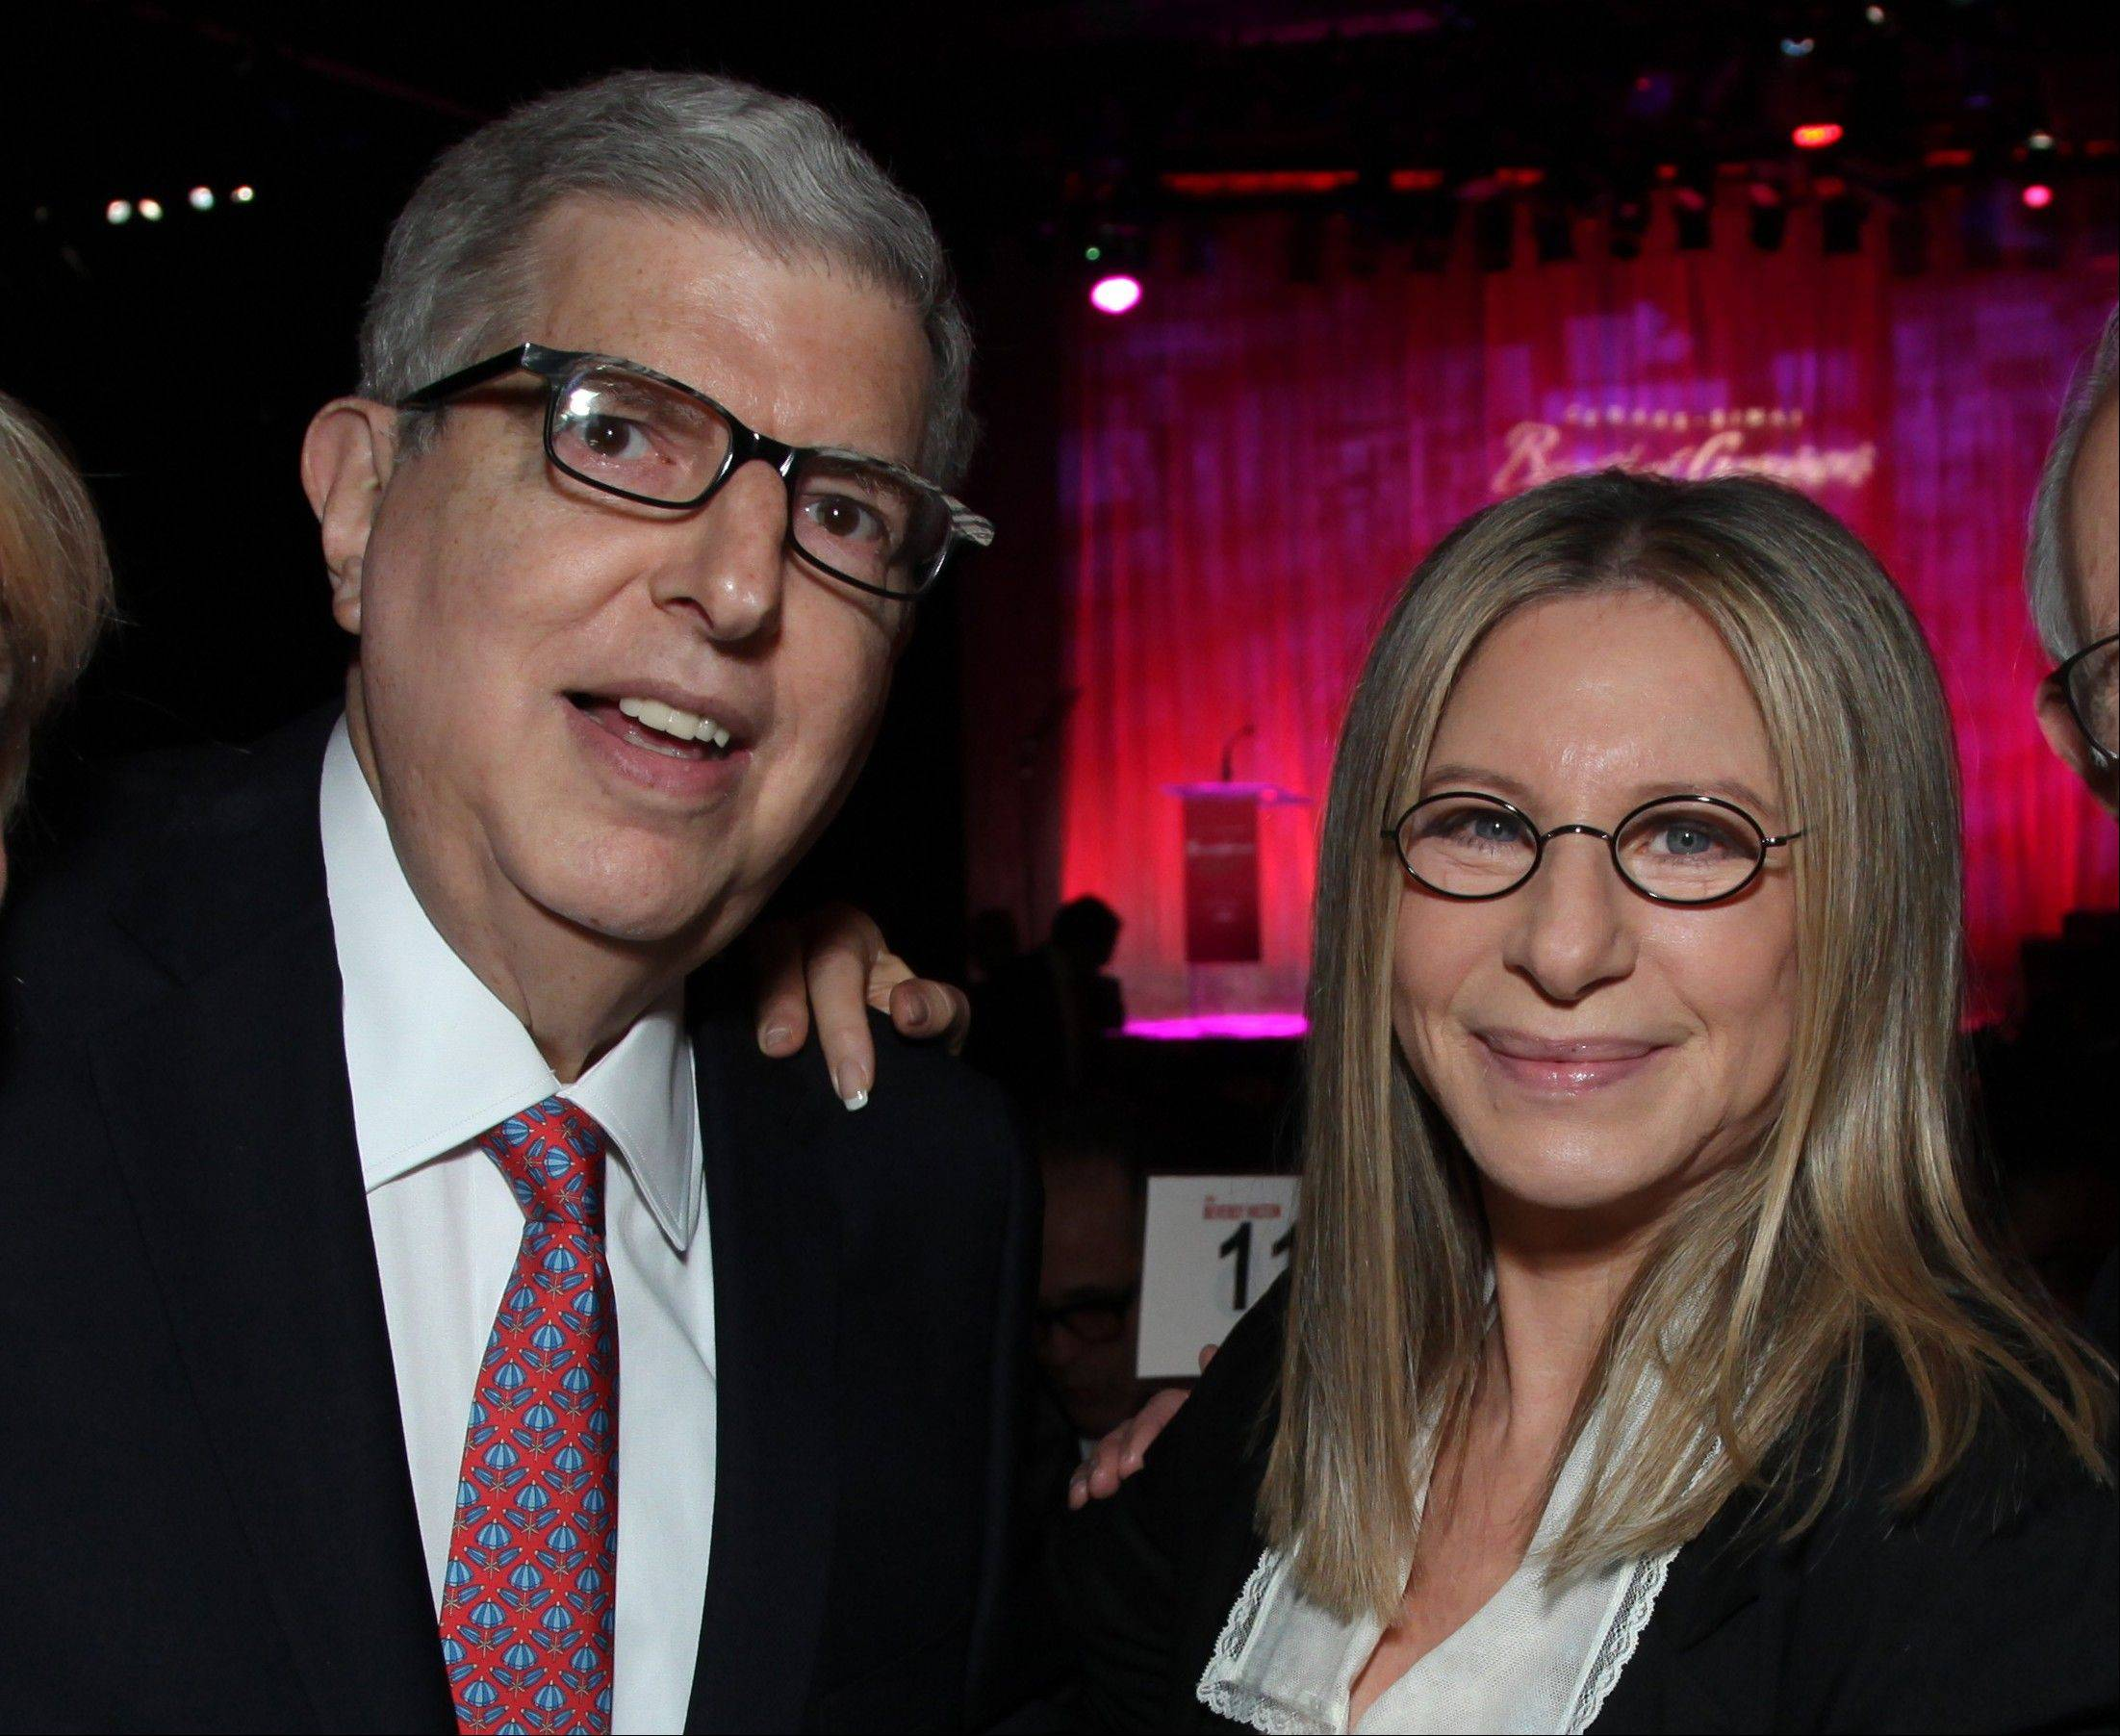 Composer Marvin Hamlisch, here with Barbra Streisand at the Cedars-Sinai Board of Governors Gala in 2011, died Monday, Aug. 6, at age 68.